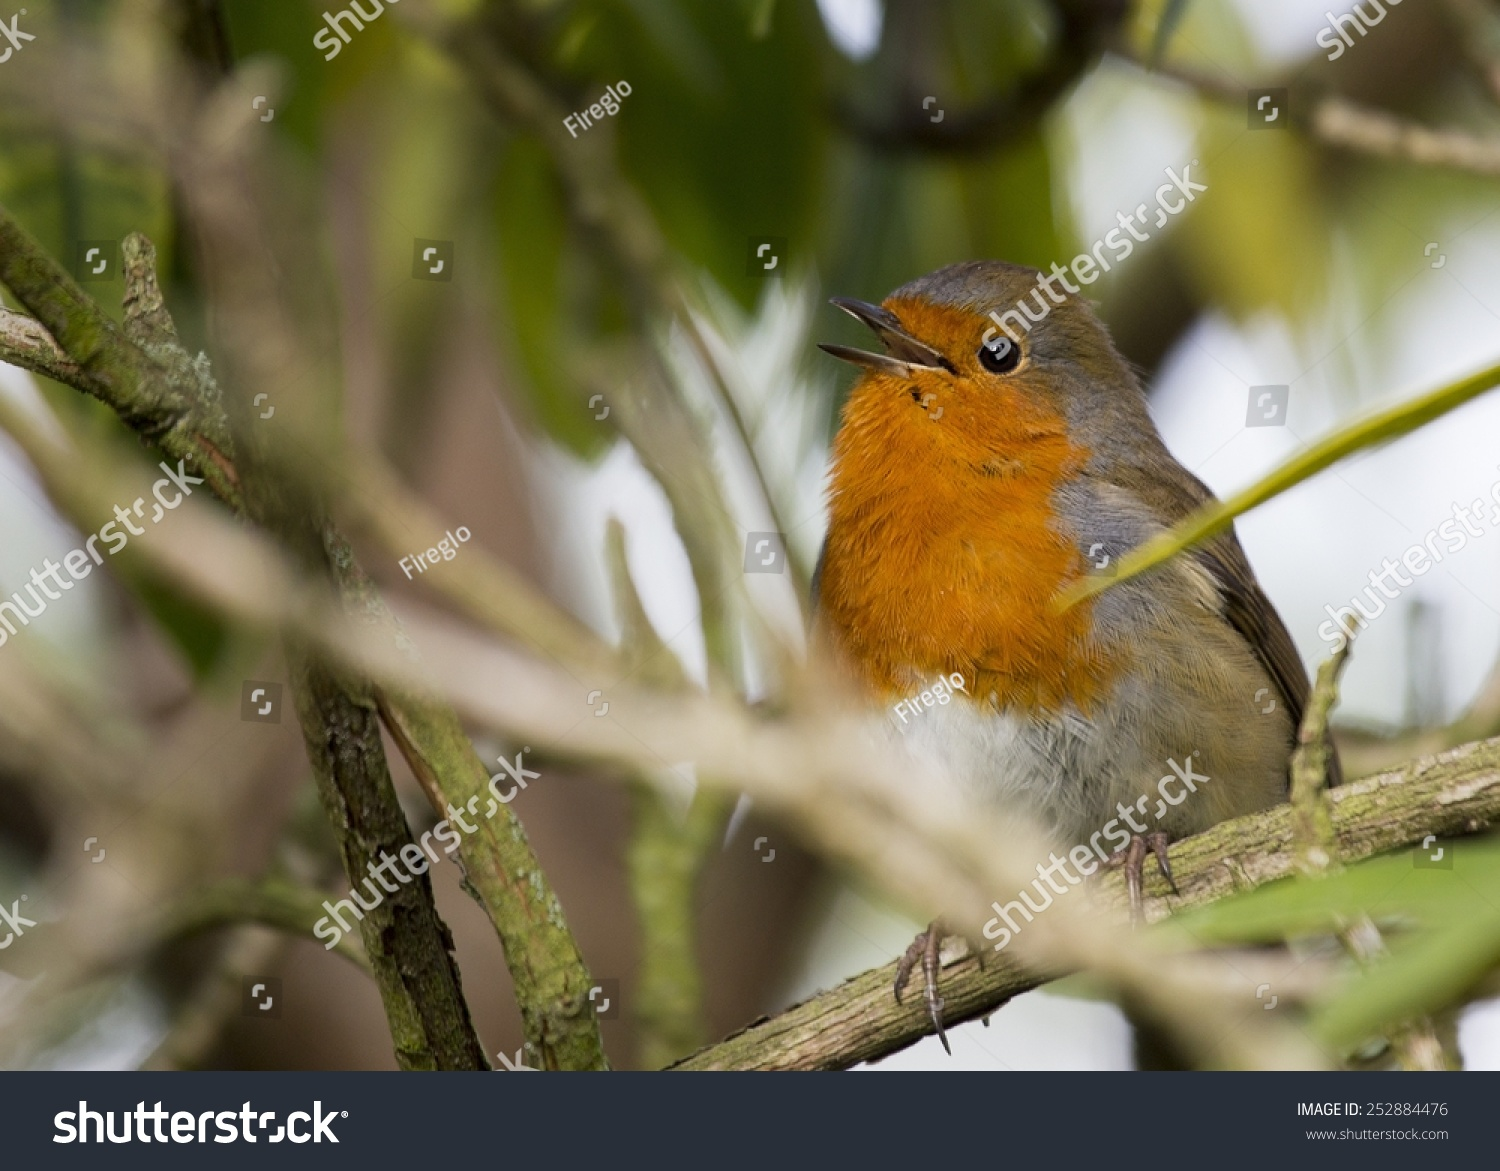 Robin Red Breast spotted in National Botanic Gardens, Dublin ...